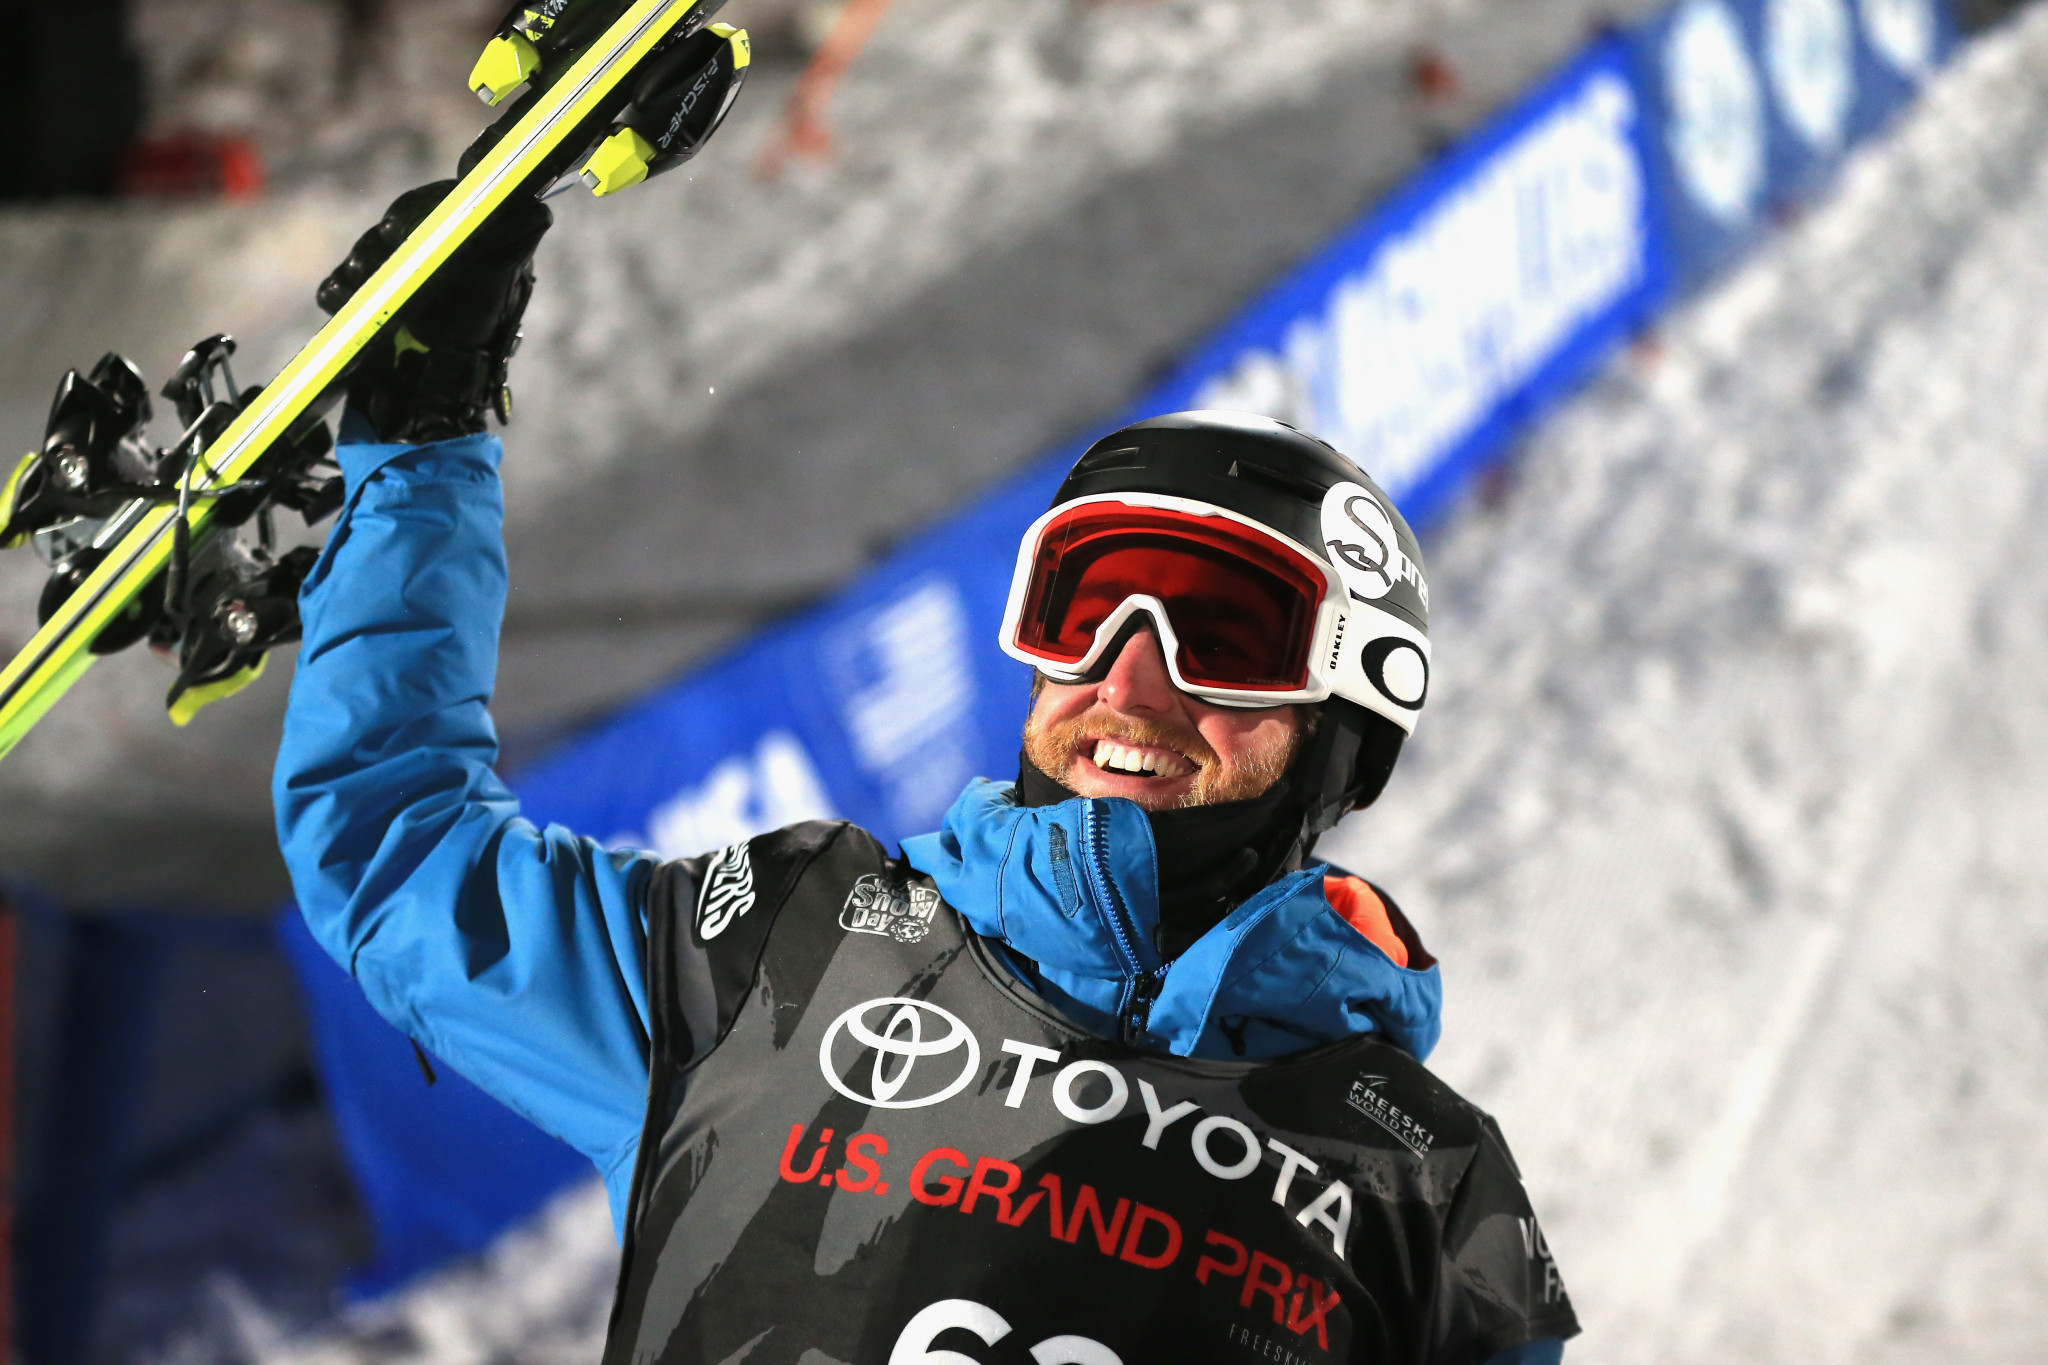 American athletes dominate on home snow at FIS Freestyle Skiing World Cup